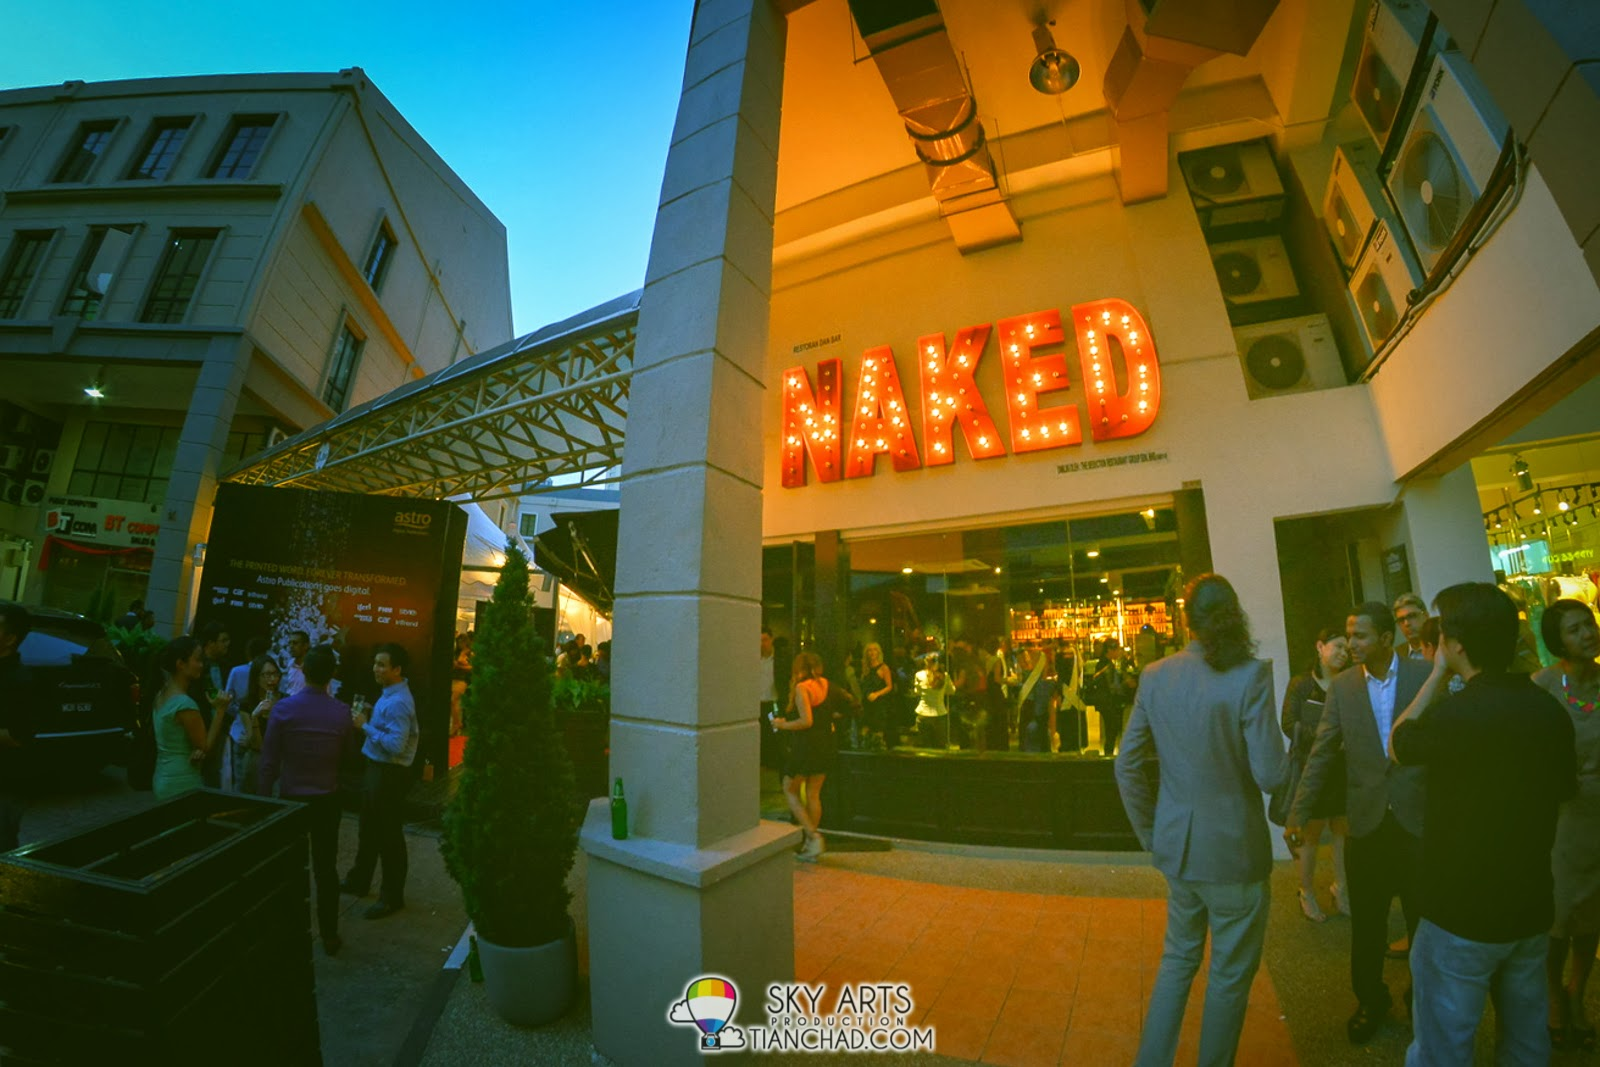 If you feel like getting 'naked', go visit the  NAKED Restaurant and Bar at Plaza Damas